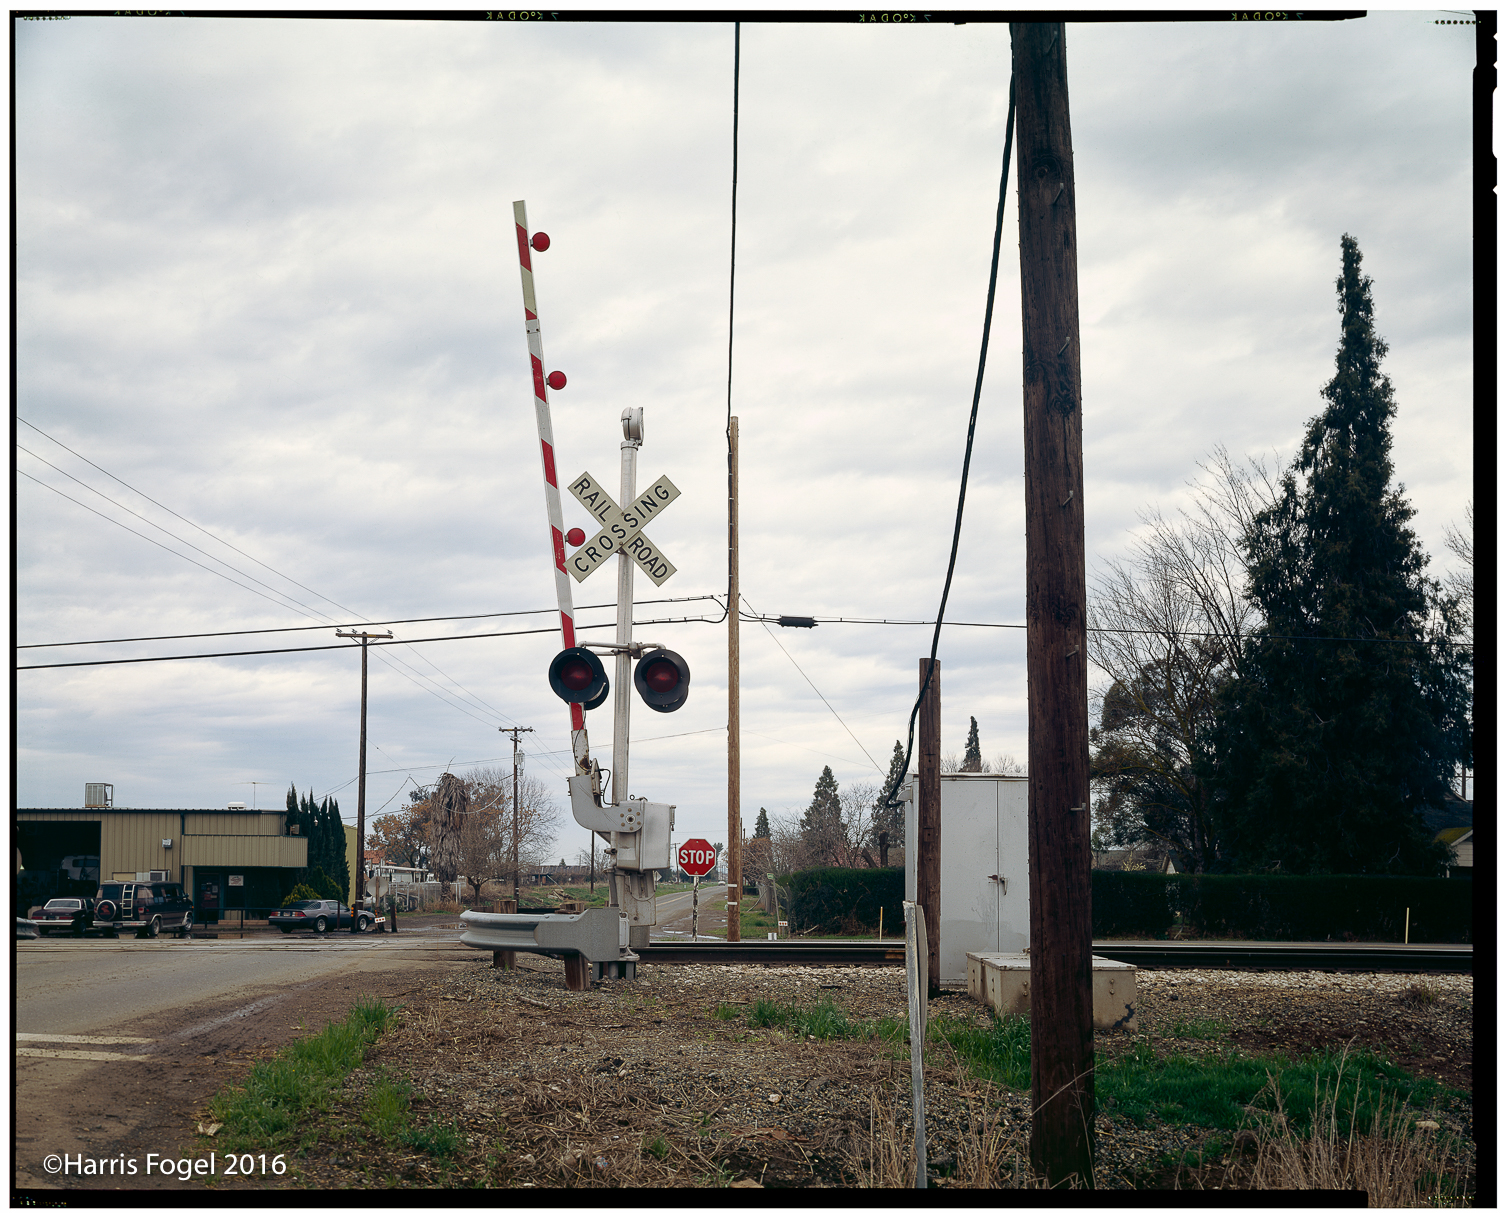 Hfogel_QA16_Merced_RR_Crossing.jpg